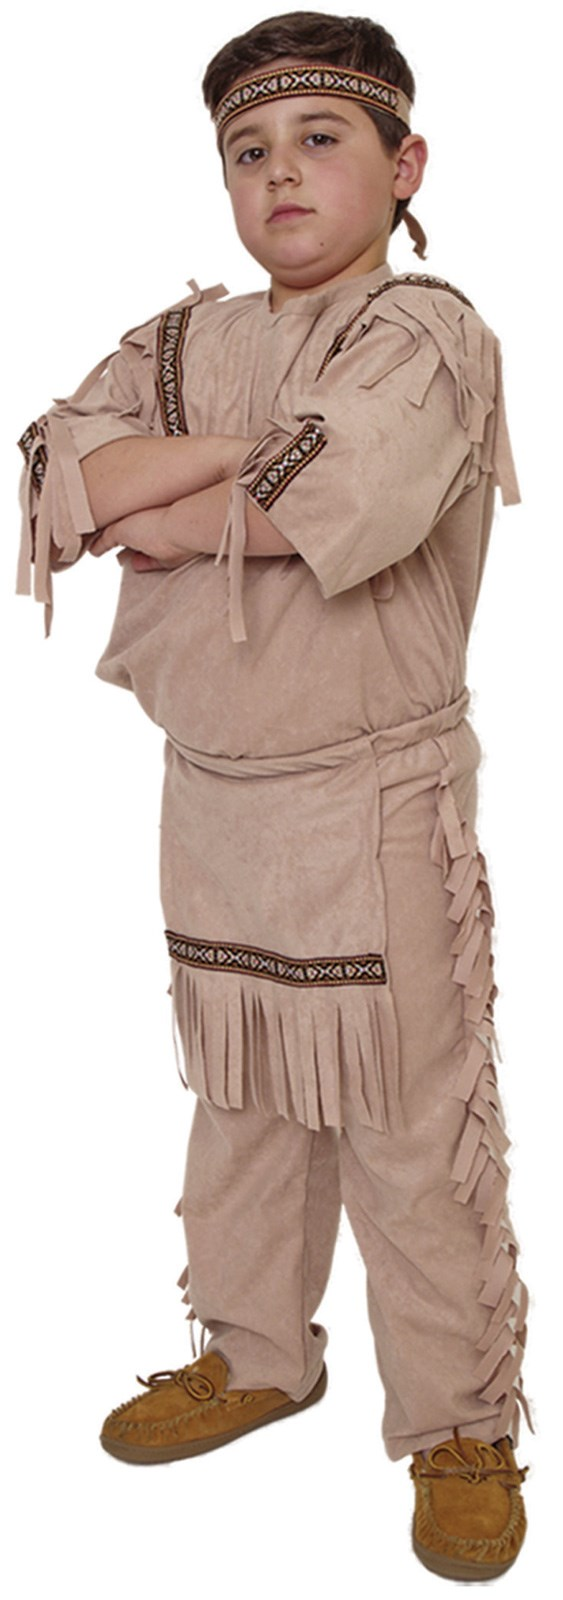 Image of Indian Boy Costume